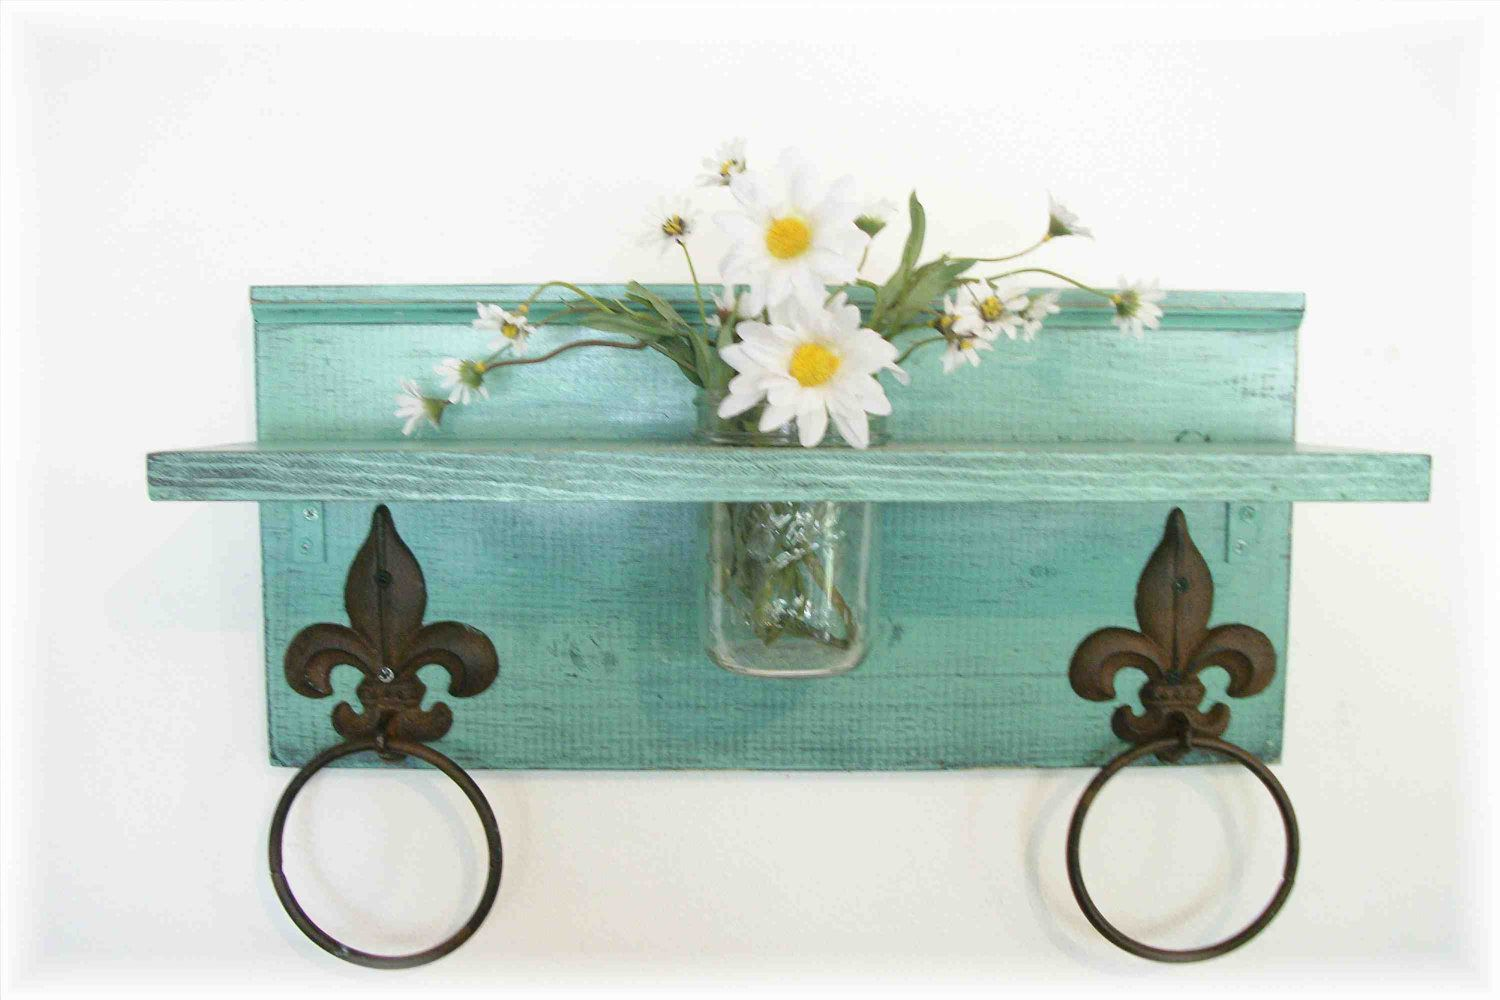 Mint Green Bathroom or Kitchen Fleur de Lis Towel Rings Shelf with ...